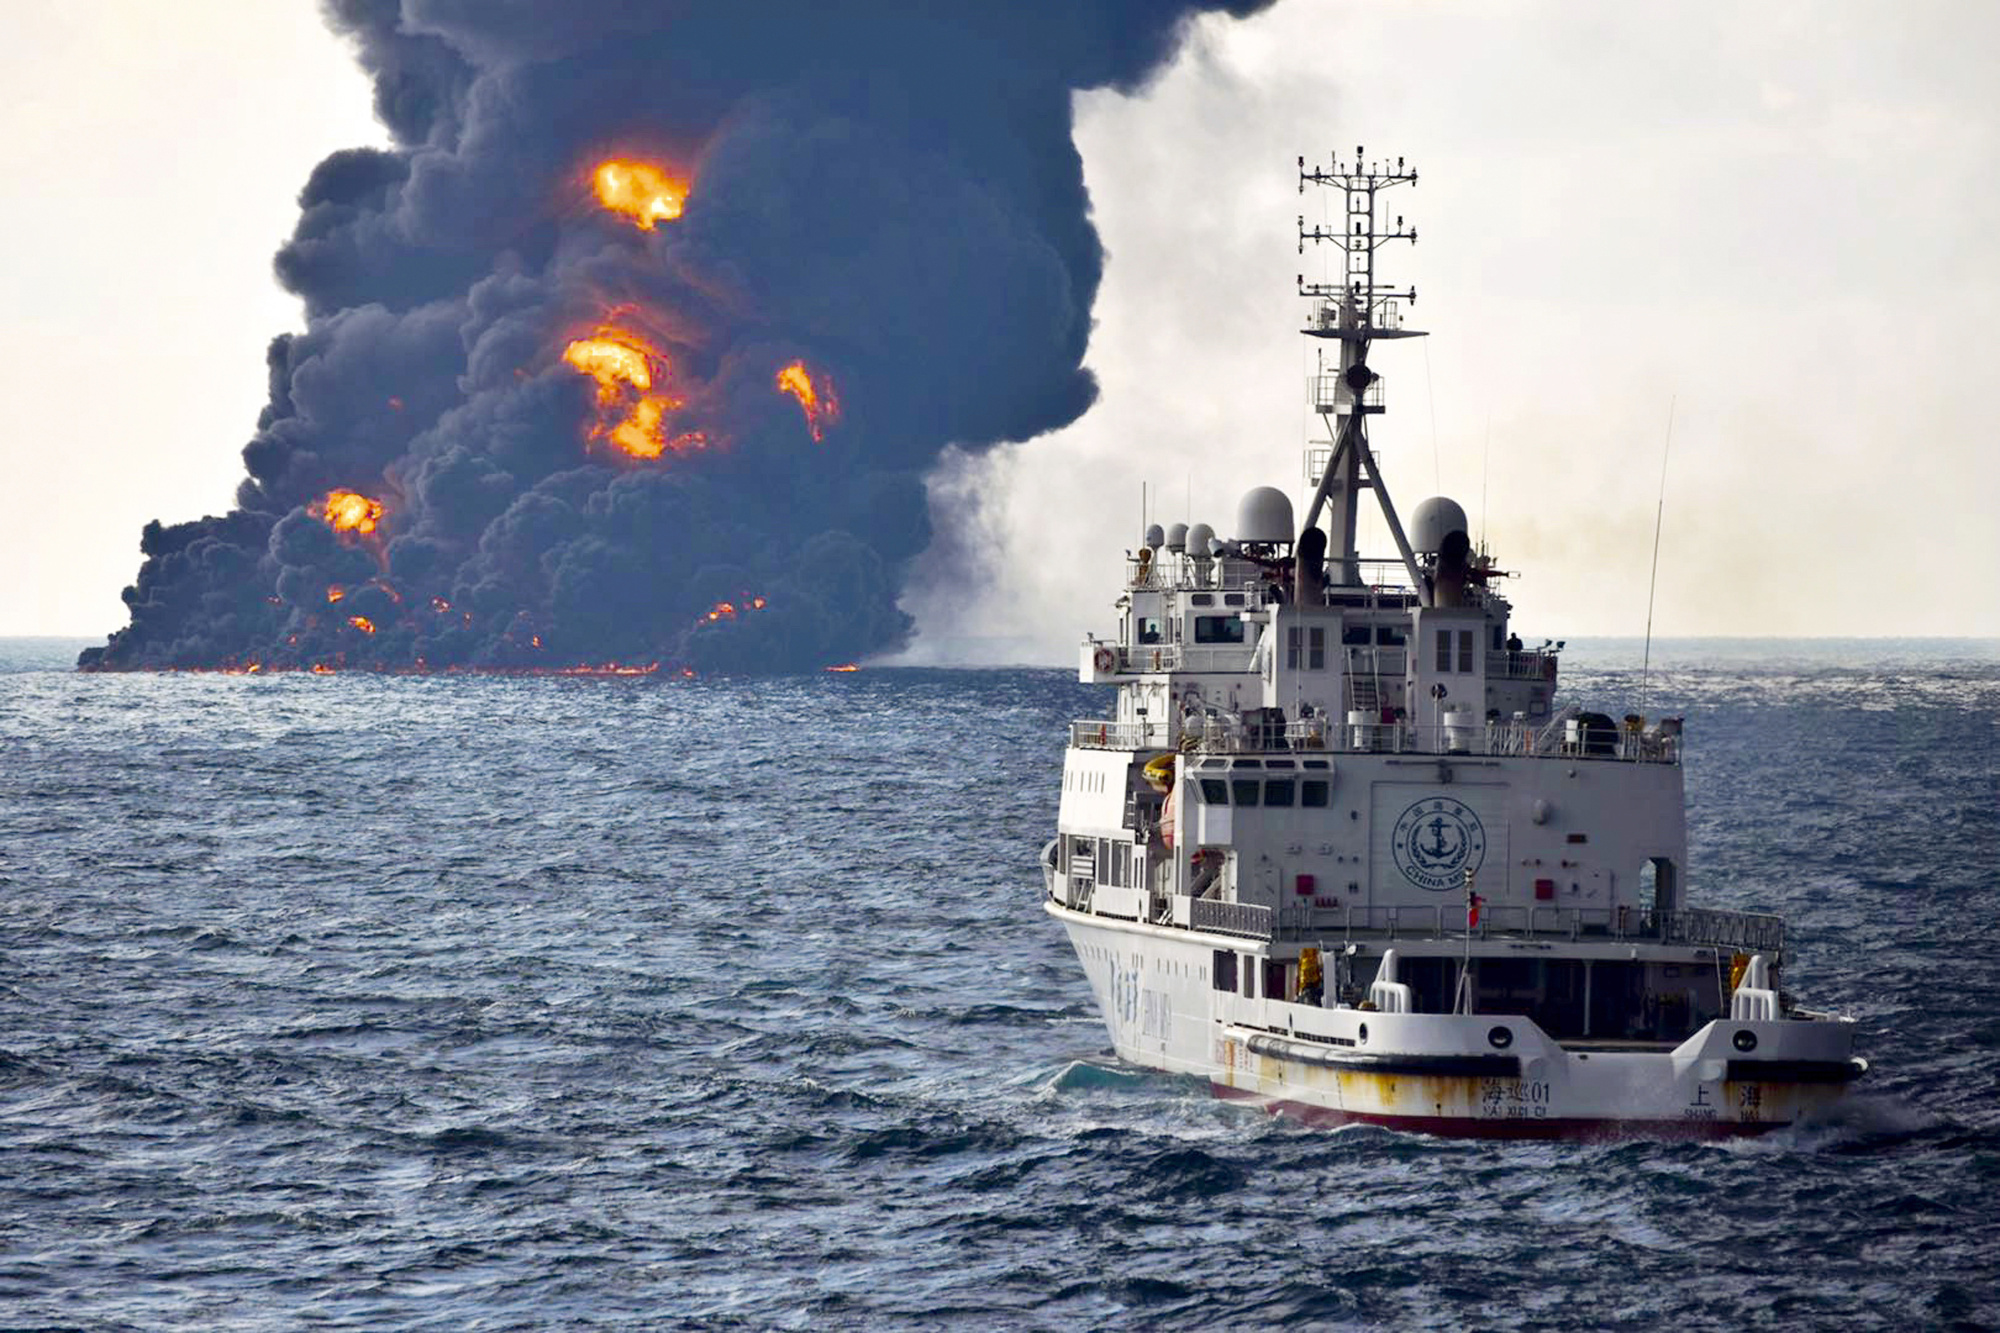 Oil Spill at Sea From Burned Ship off China Spreads 'Noticeably'